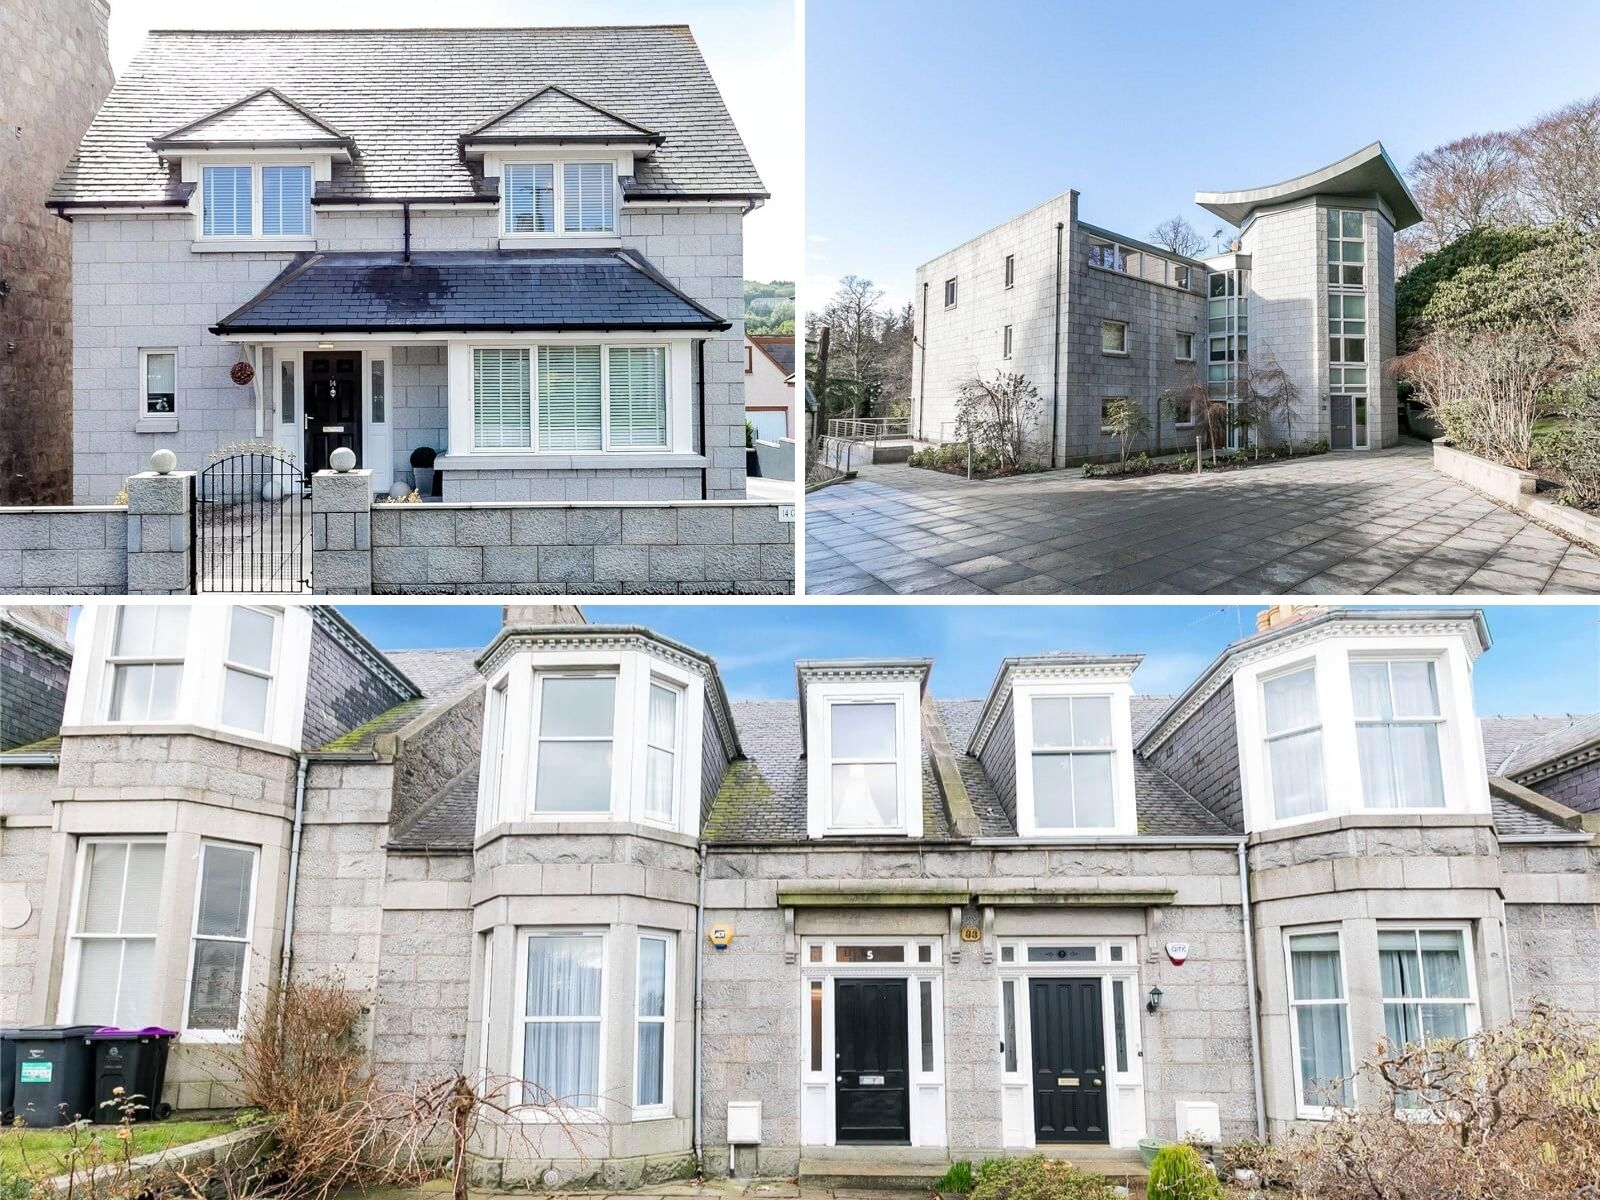 Three stunning family homes for £500,000 and under